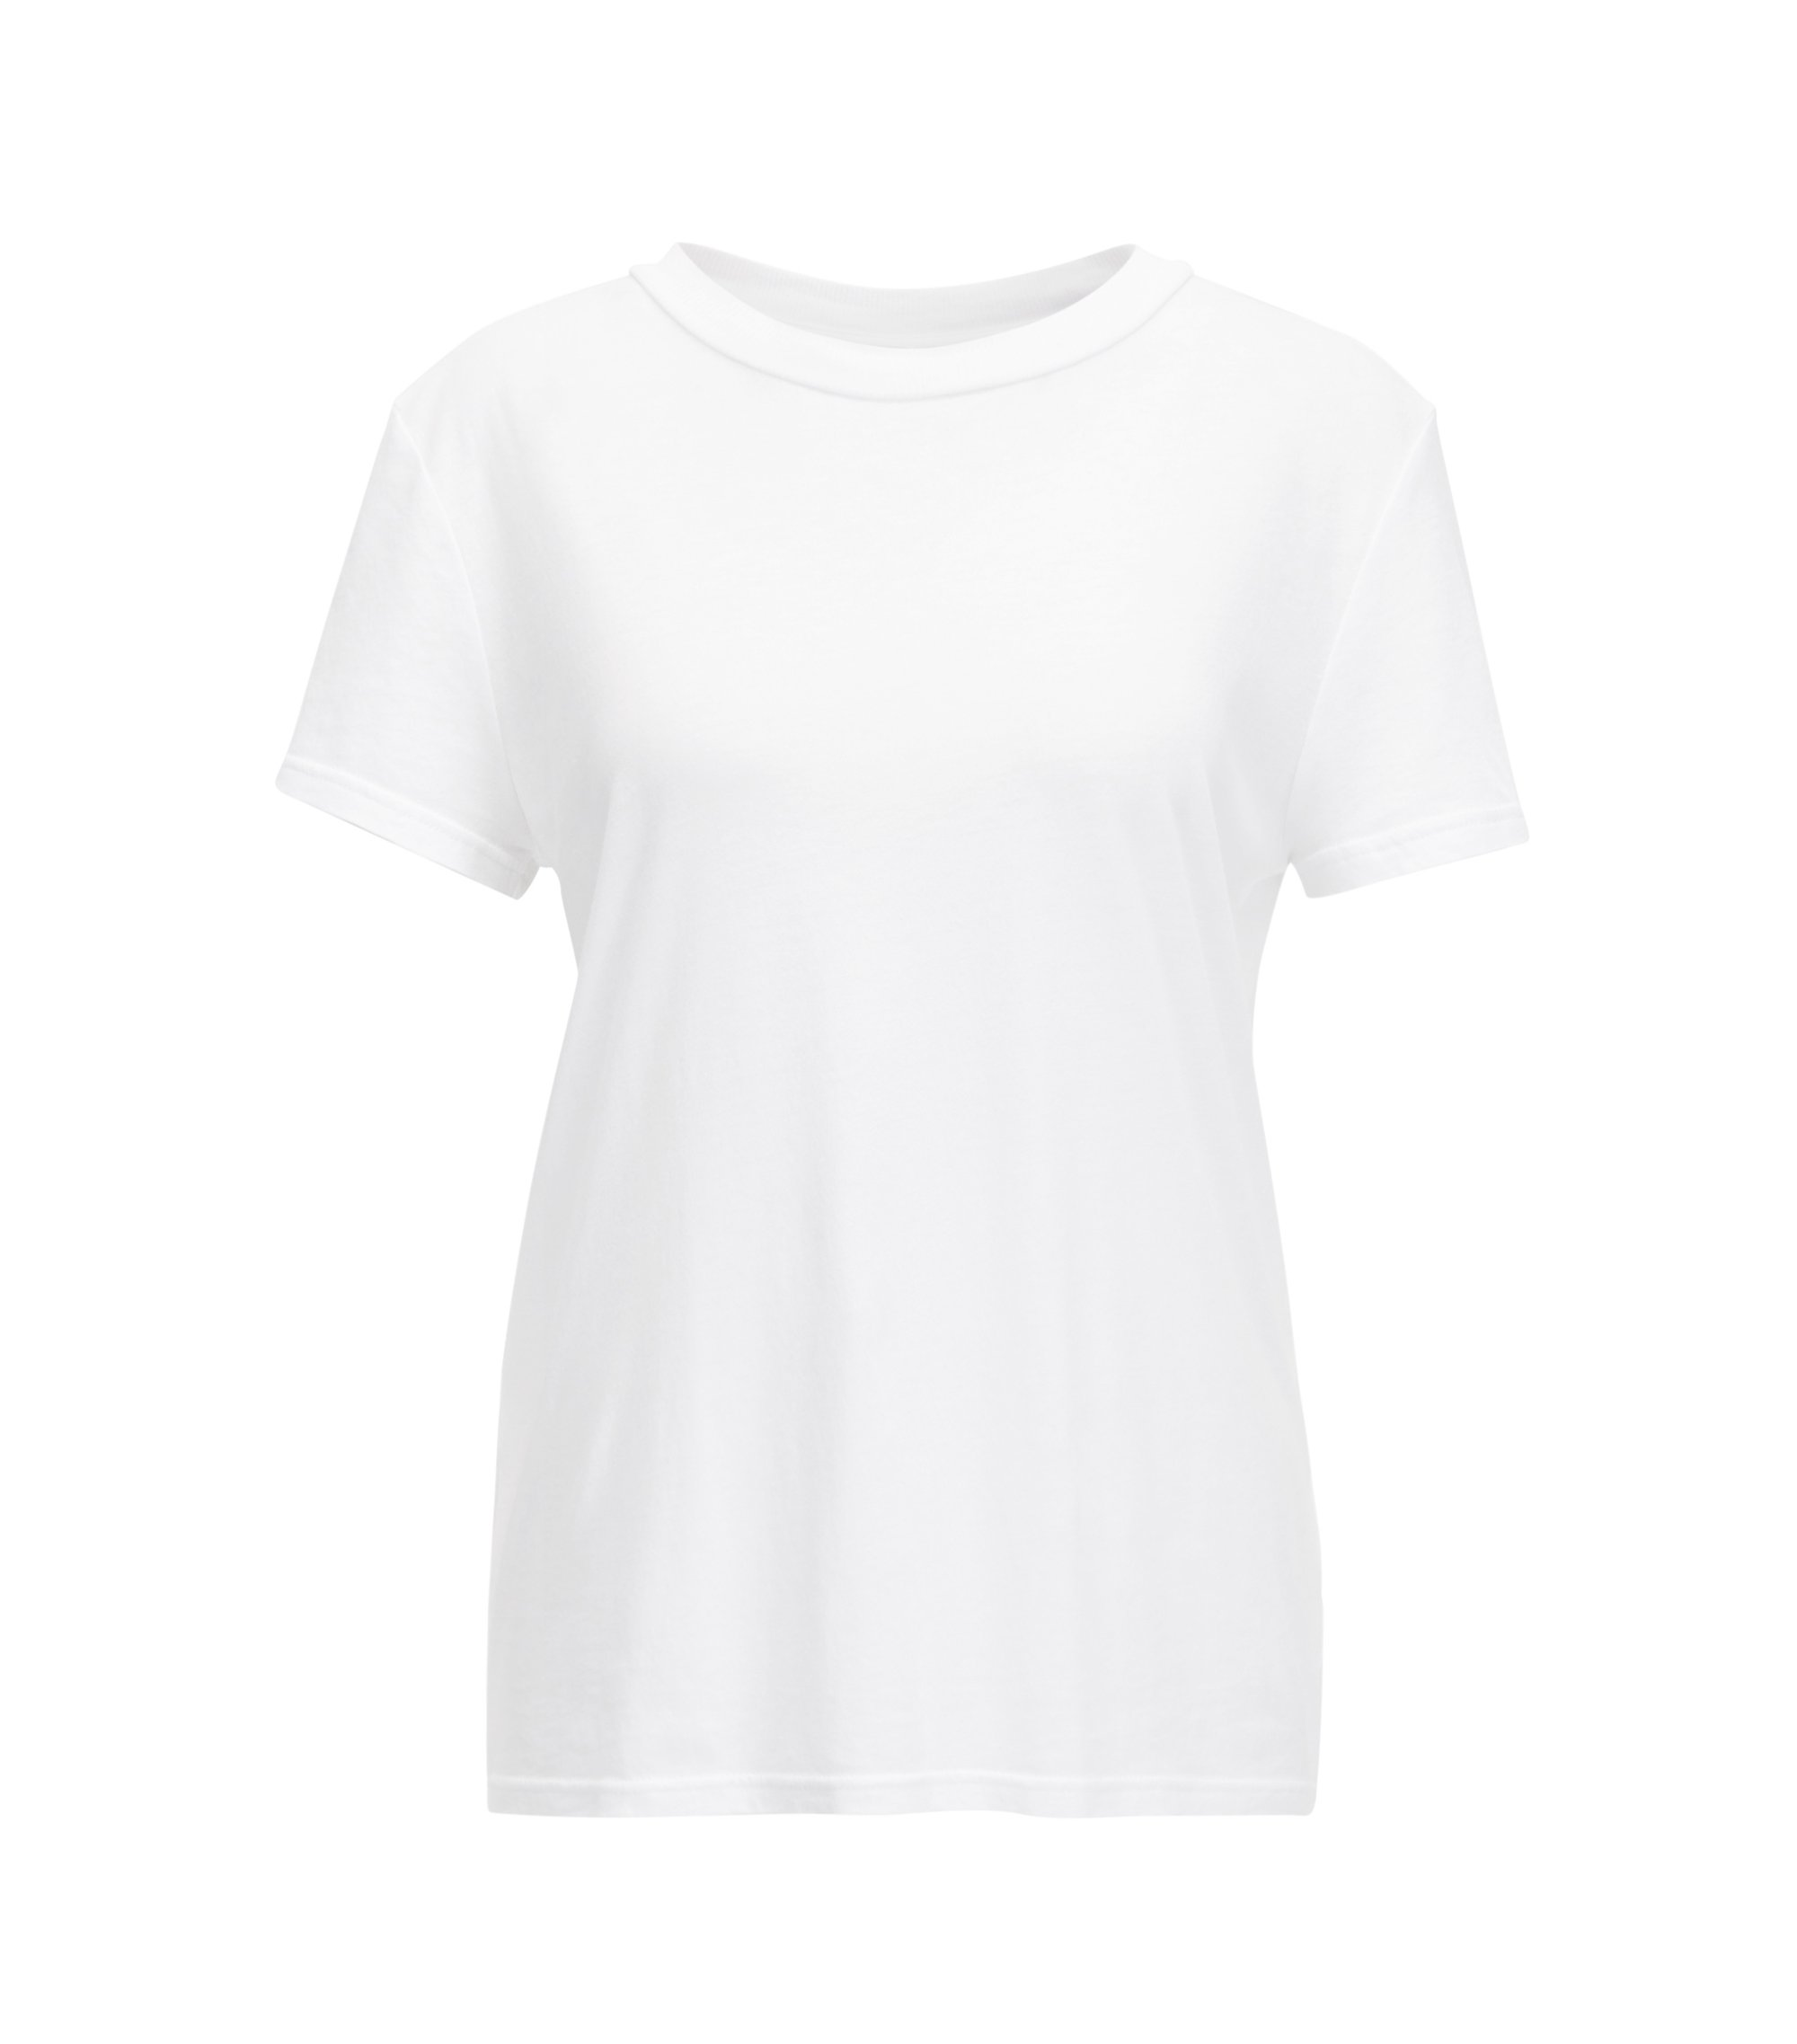 T-shirt Oversized Fit en coton mélangé à encolure originale, Blanc